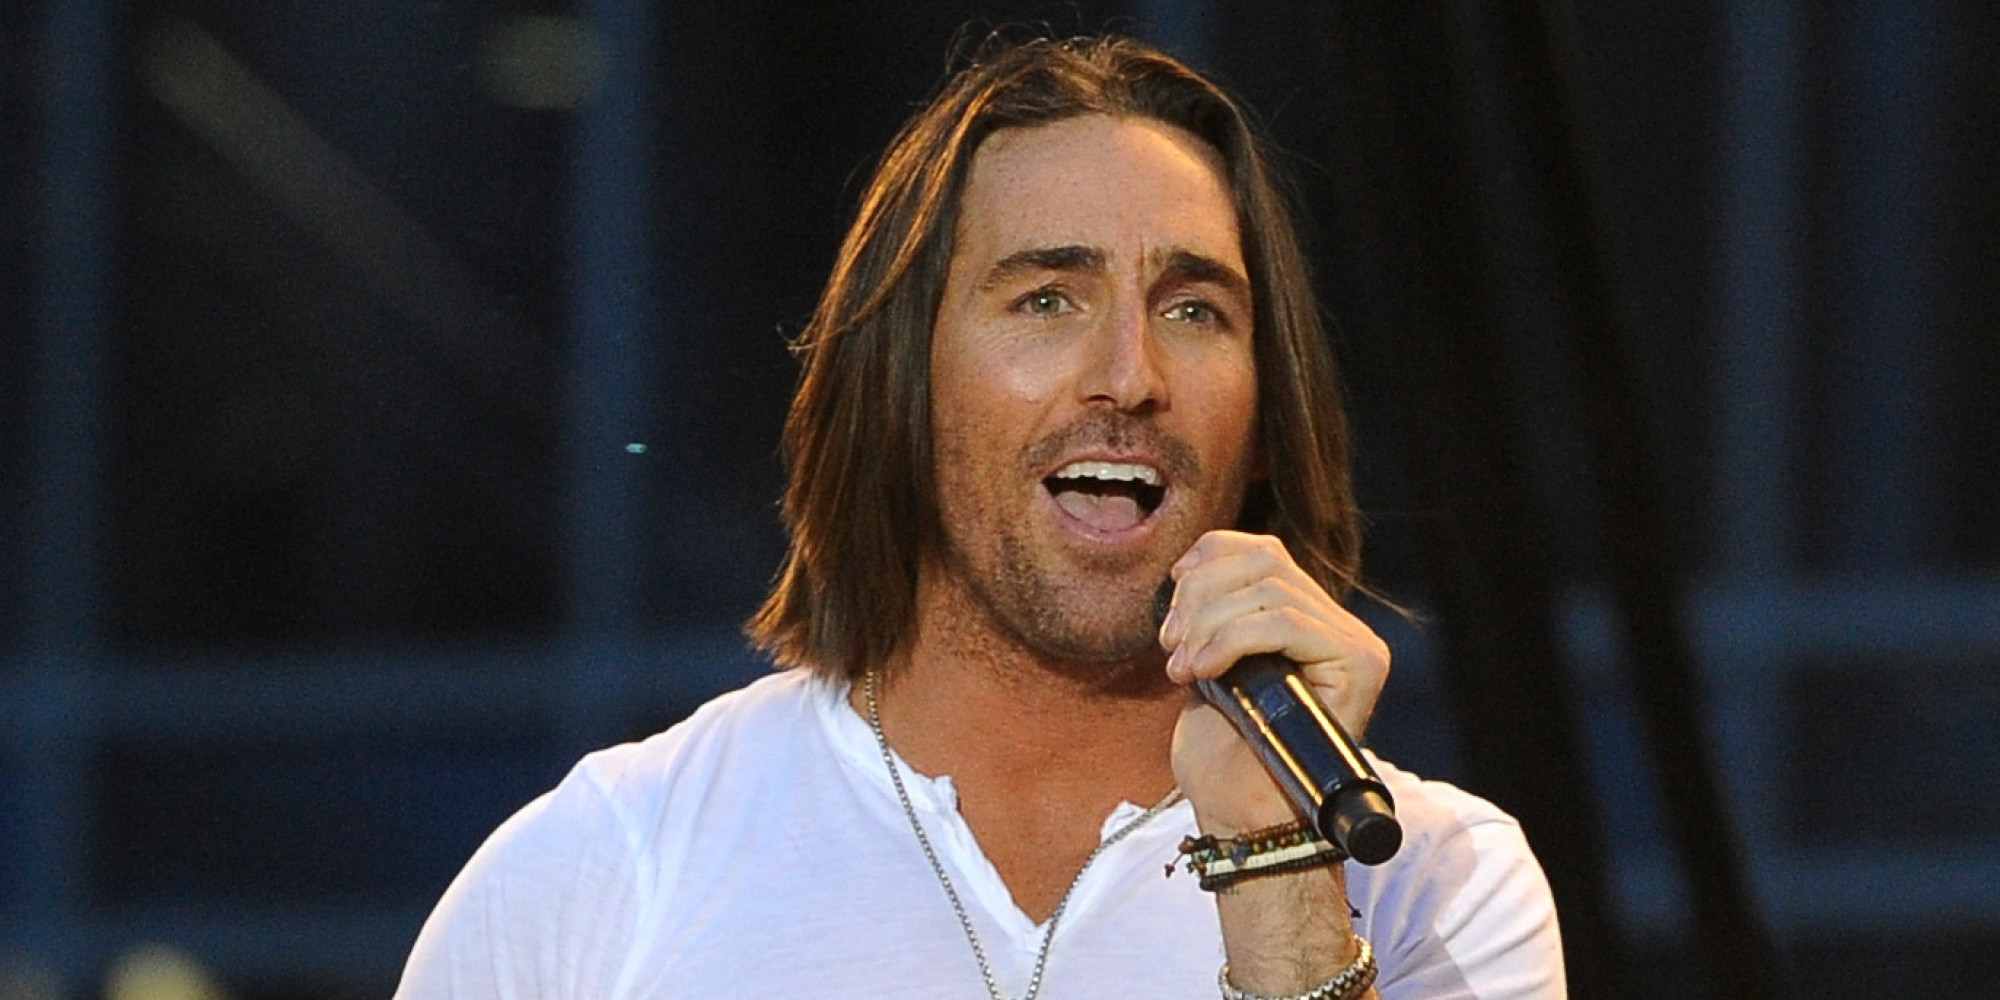 Jake Owen List Of Songs Cool country star jake owen has the right attitude about the music